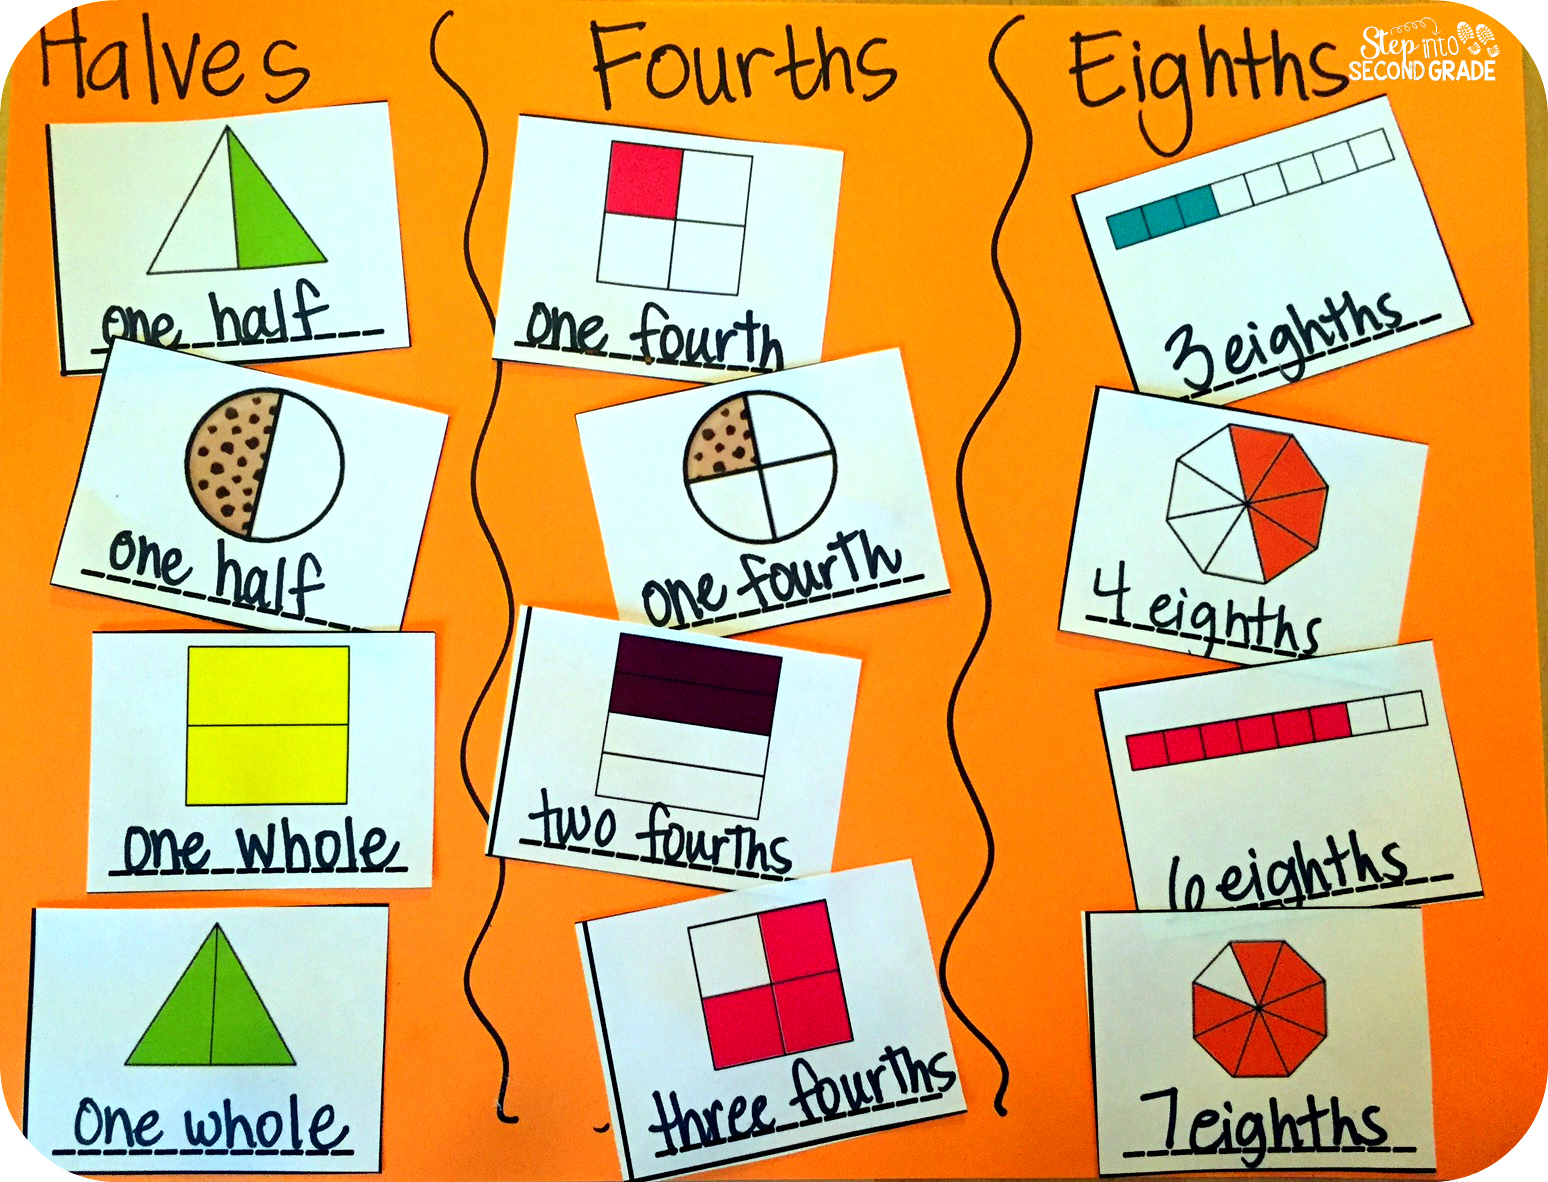 Math Worksheet Inspiring Fraction Videos Images best step into 2nd grade with mrs lemons new fraction ideas freebies they will also continue naming fractions and sorting them based on their parts for this sort we are going to order the